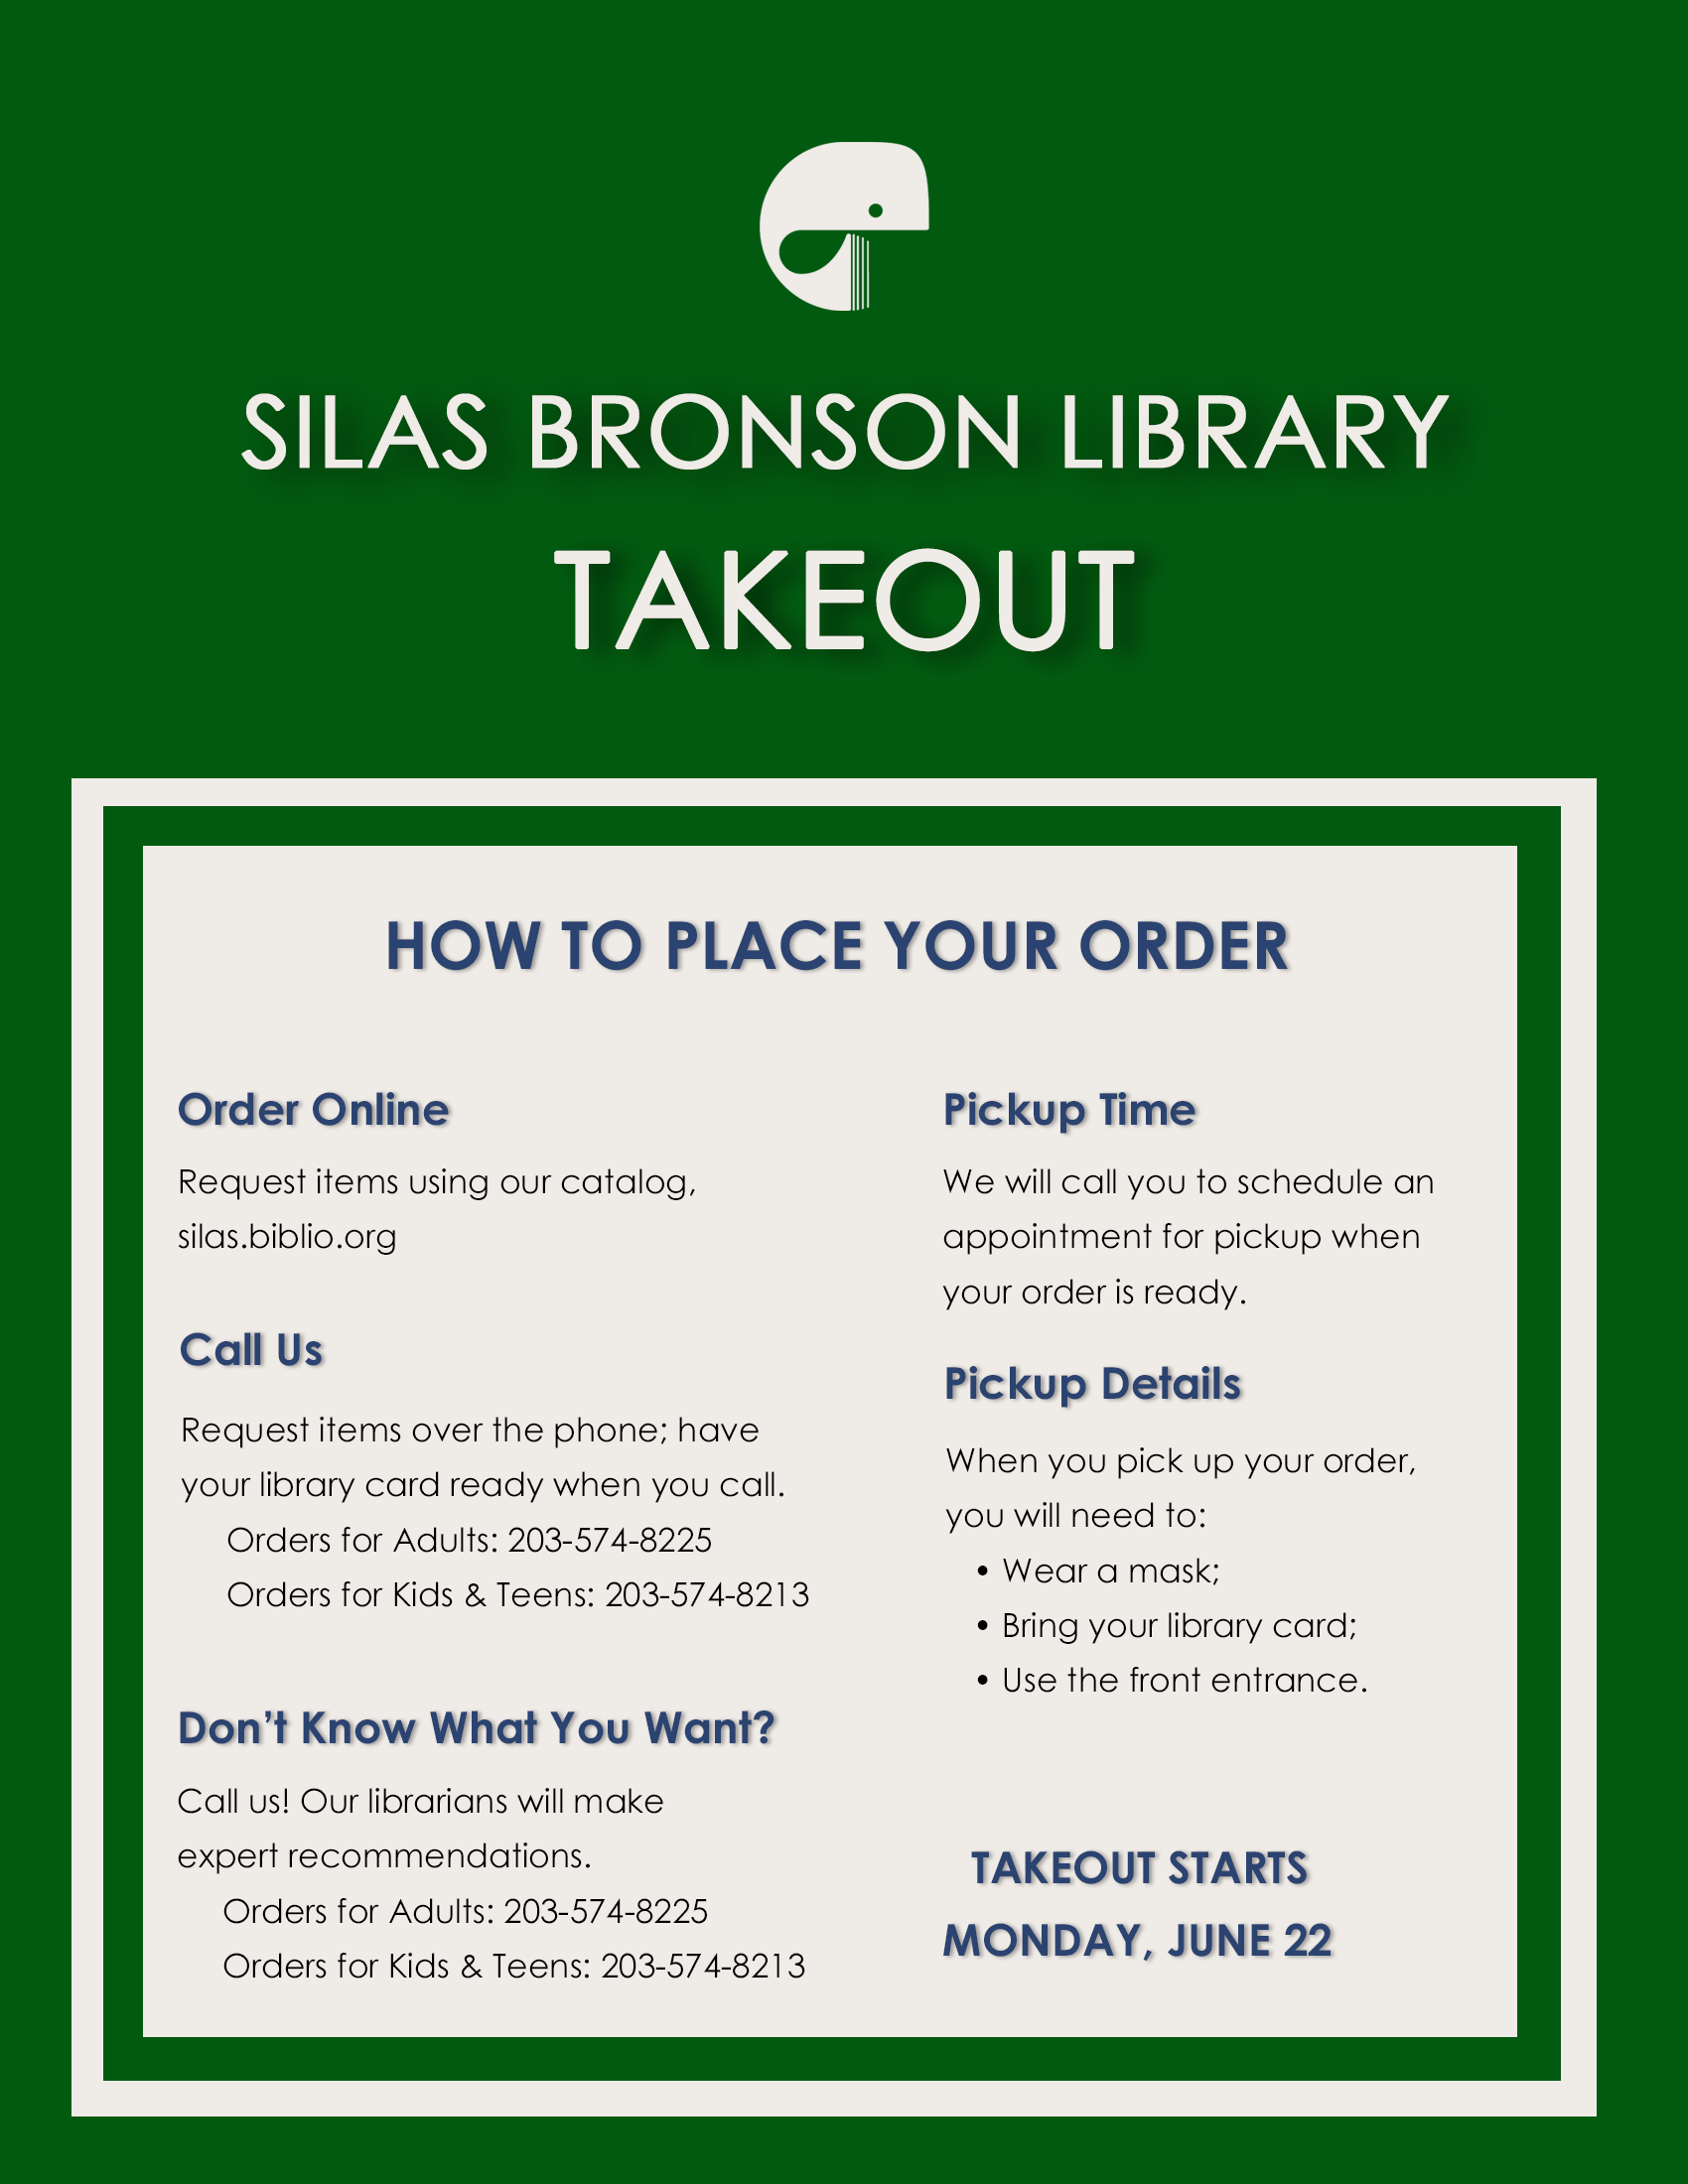 poster with instructions for Silas Broson Library takeout service